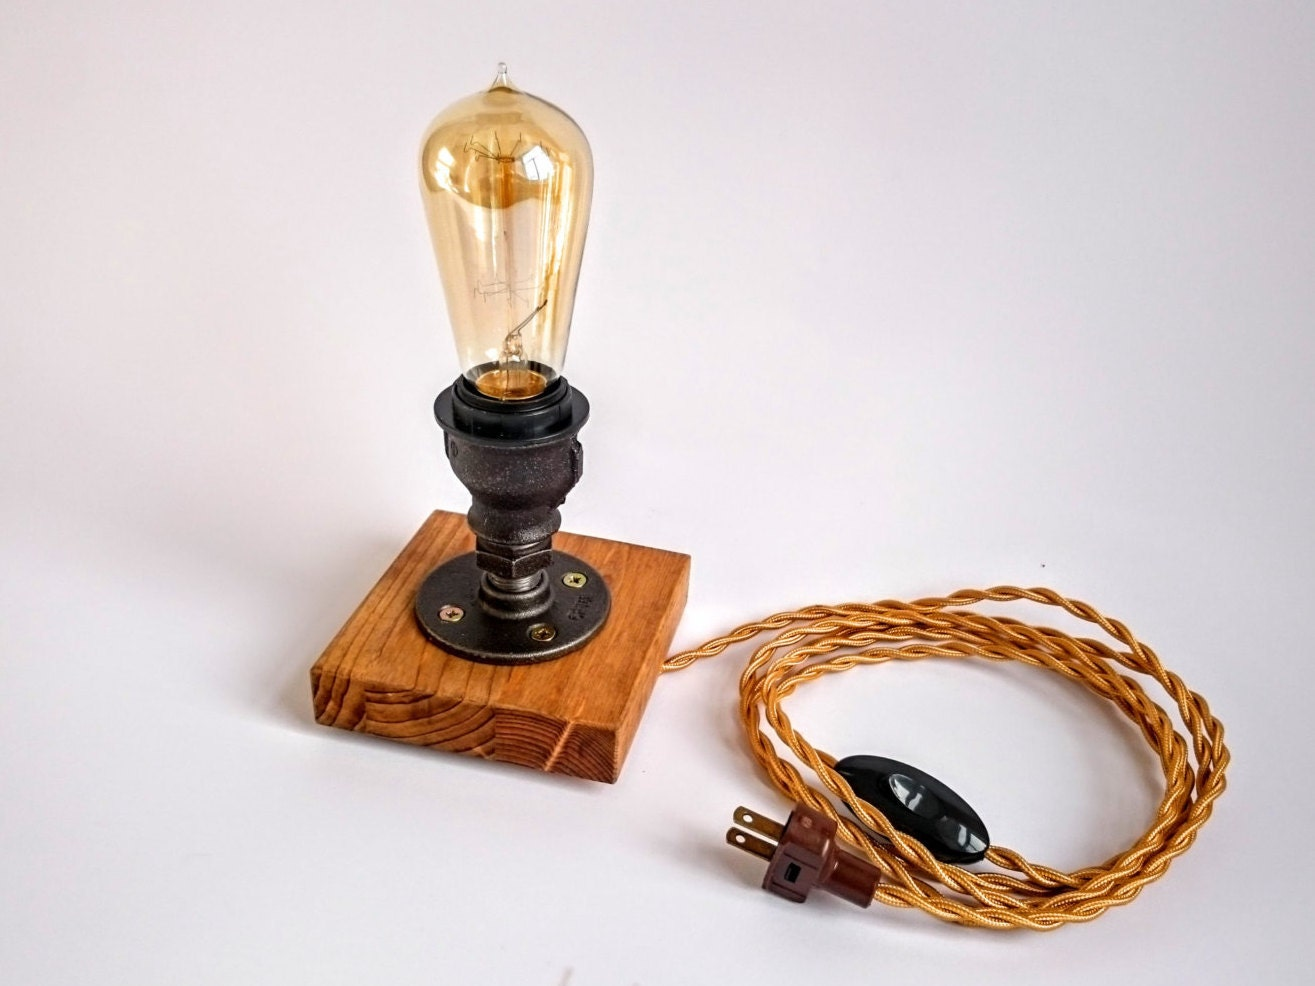 edison lamp steampunk lamp table lamp industrial lighting. Black Bedroom Furniture Sets. Home Design Ideas